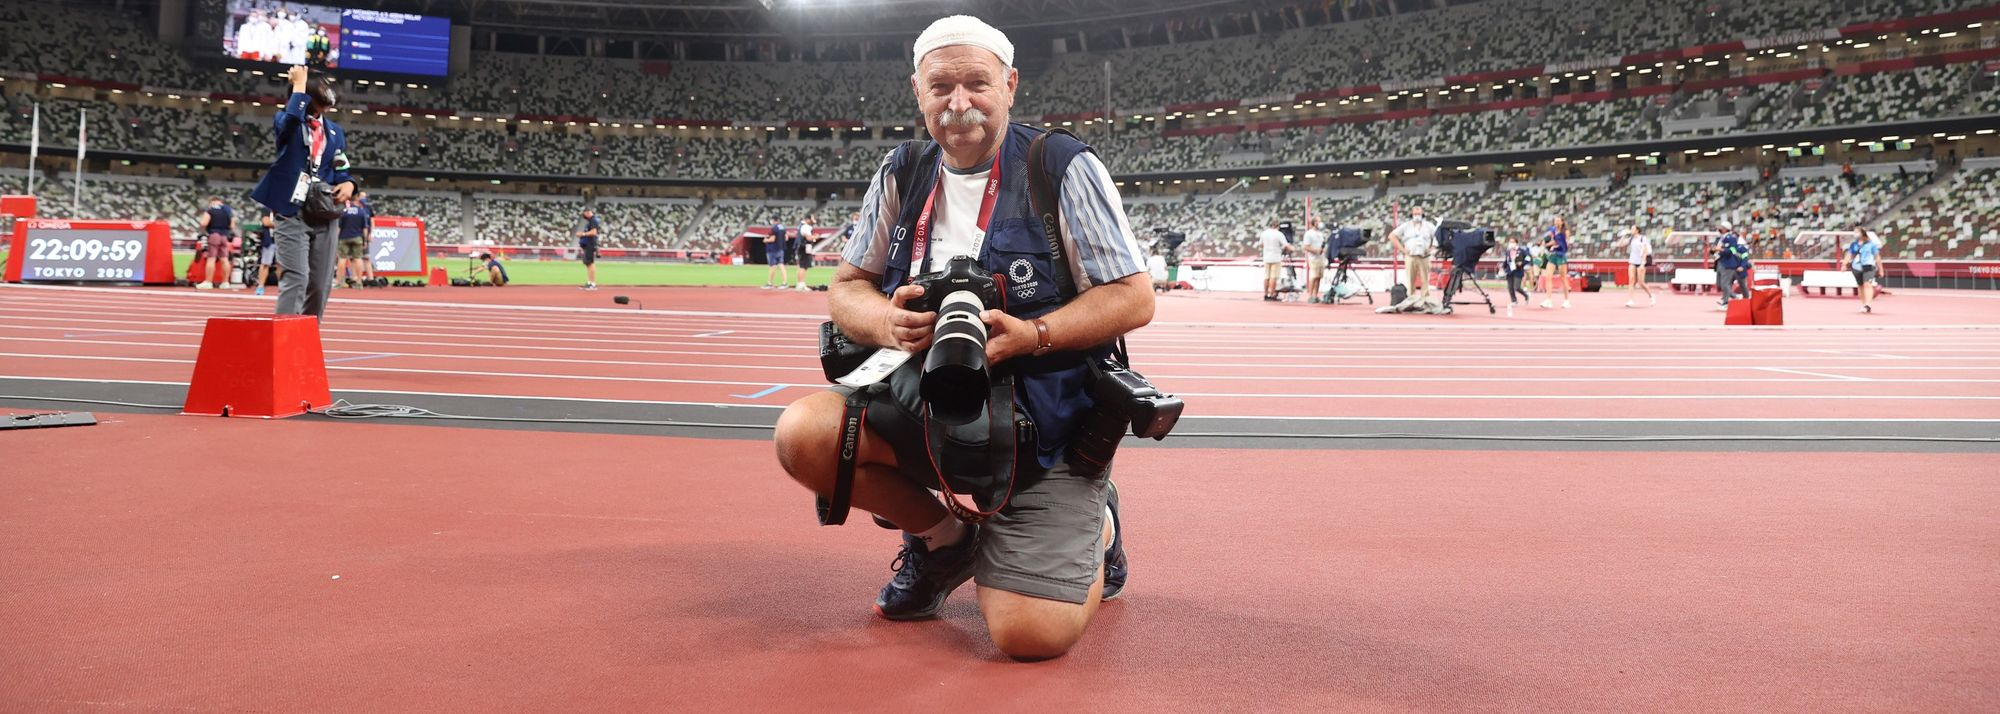 World Athletics is deeply saddened to hear that Jean-Pierre Durand, one of the sport's most prolific photographers, died on Tuesday (19) at the age of 66.